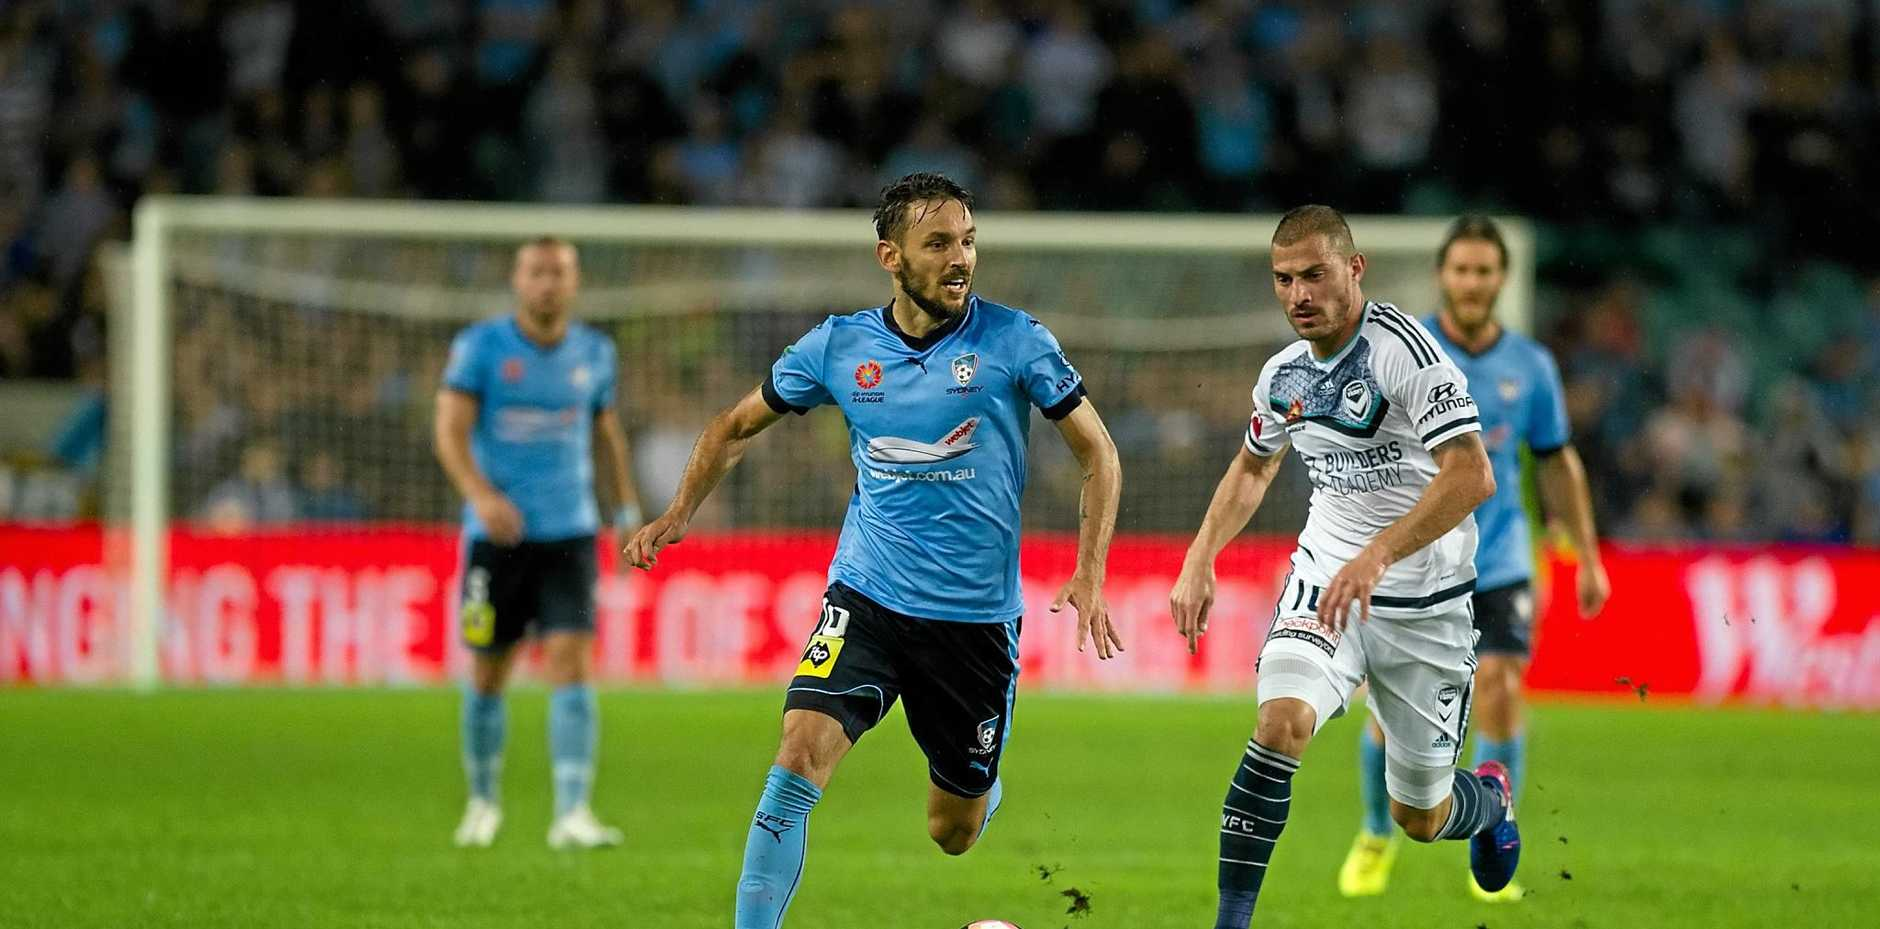 Milos Ninkovic of Sydney FC and James Troisi of Melbourne Victory during the round 22 A-League match between Sydney FC and Melbourne Victory at Allianz Stadium in Sydney, Friday, March 3, 2017. (AAP Image/Joel Carrett) NO ARCHIVING, EDITORIAL USE ONLY